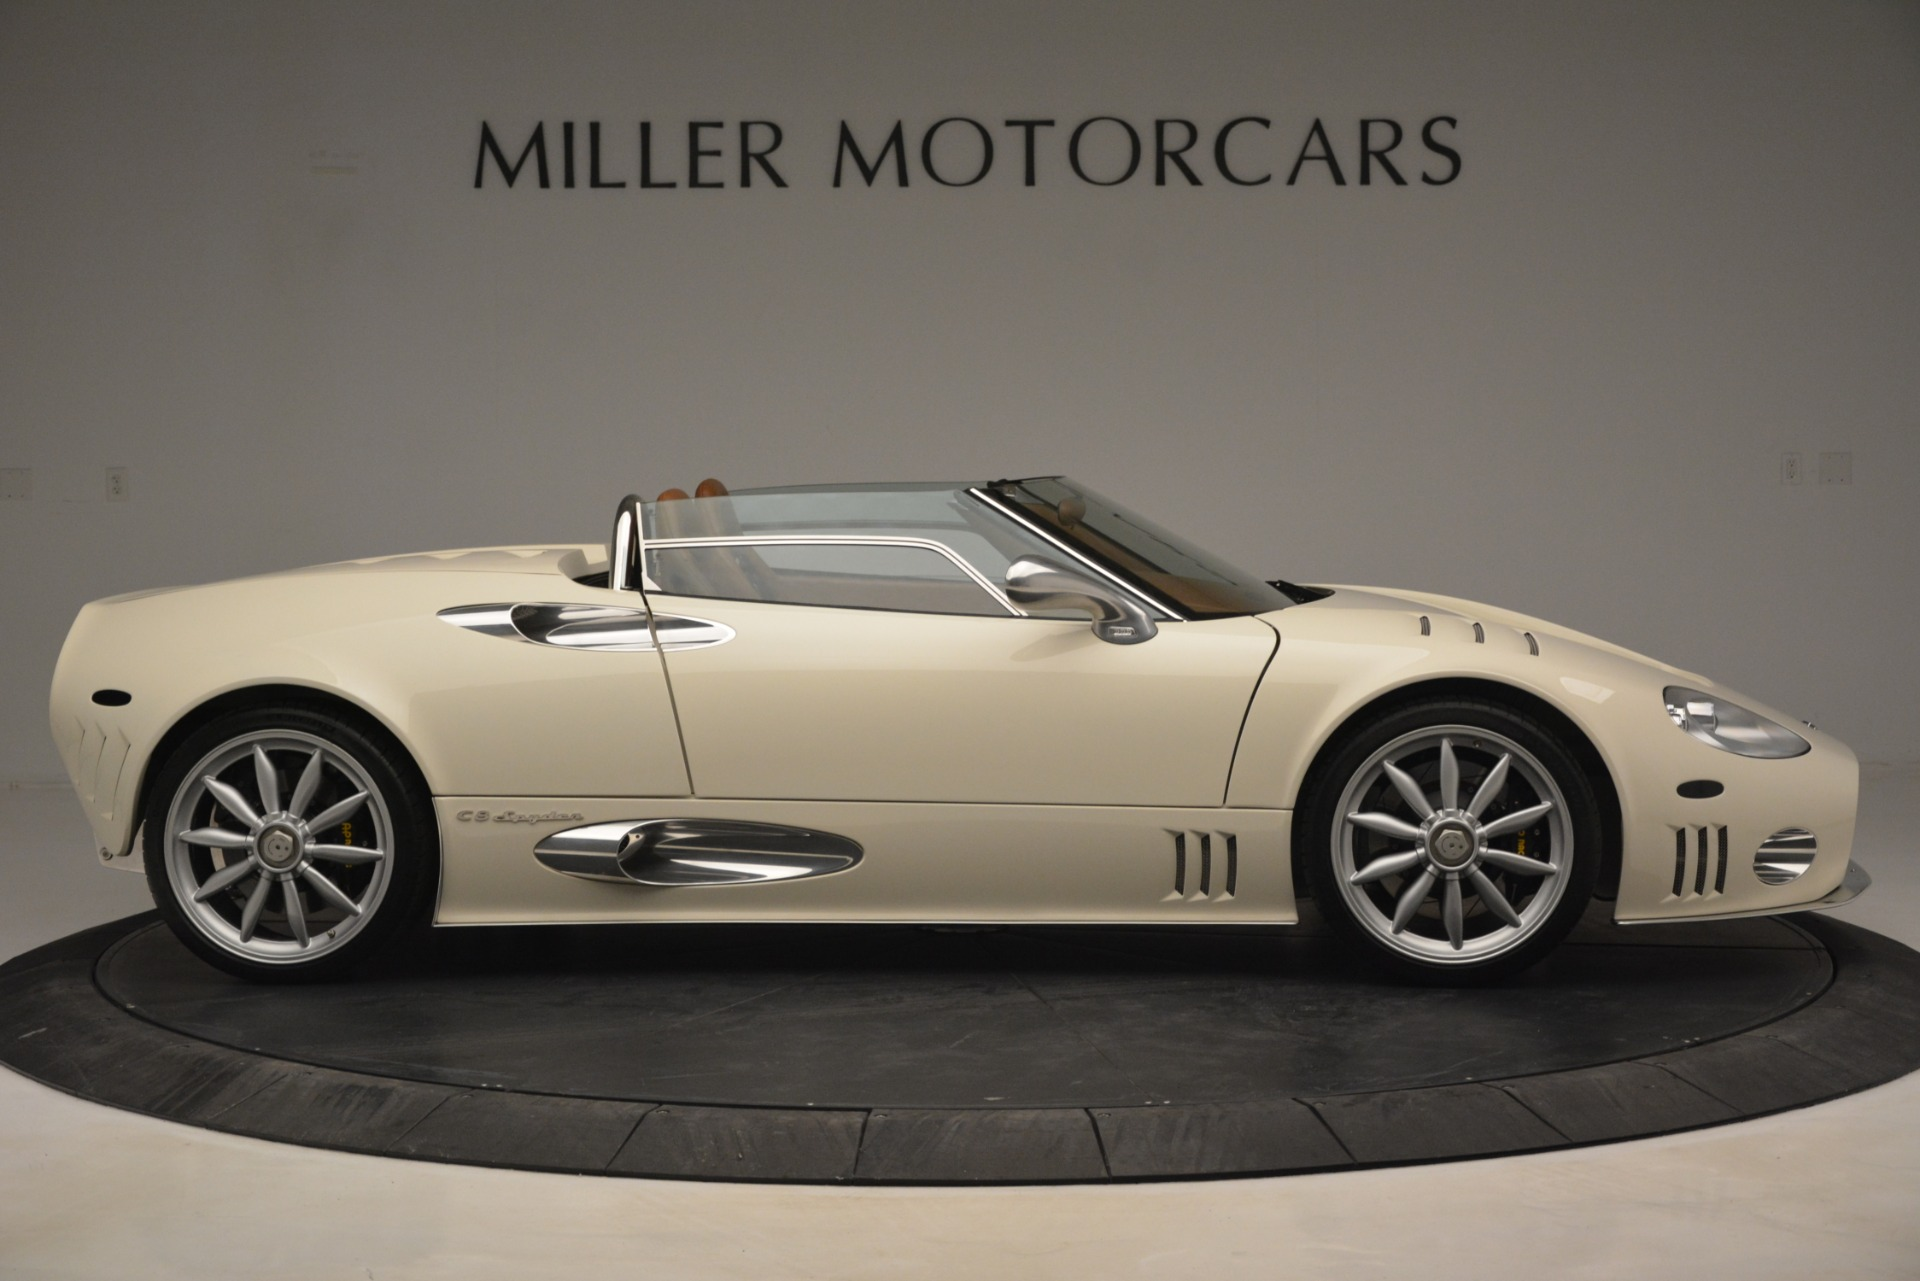 Used 2006 Spyker C8 Spyder  For Sale In Westport, CT 1661_p9